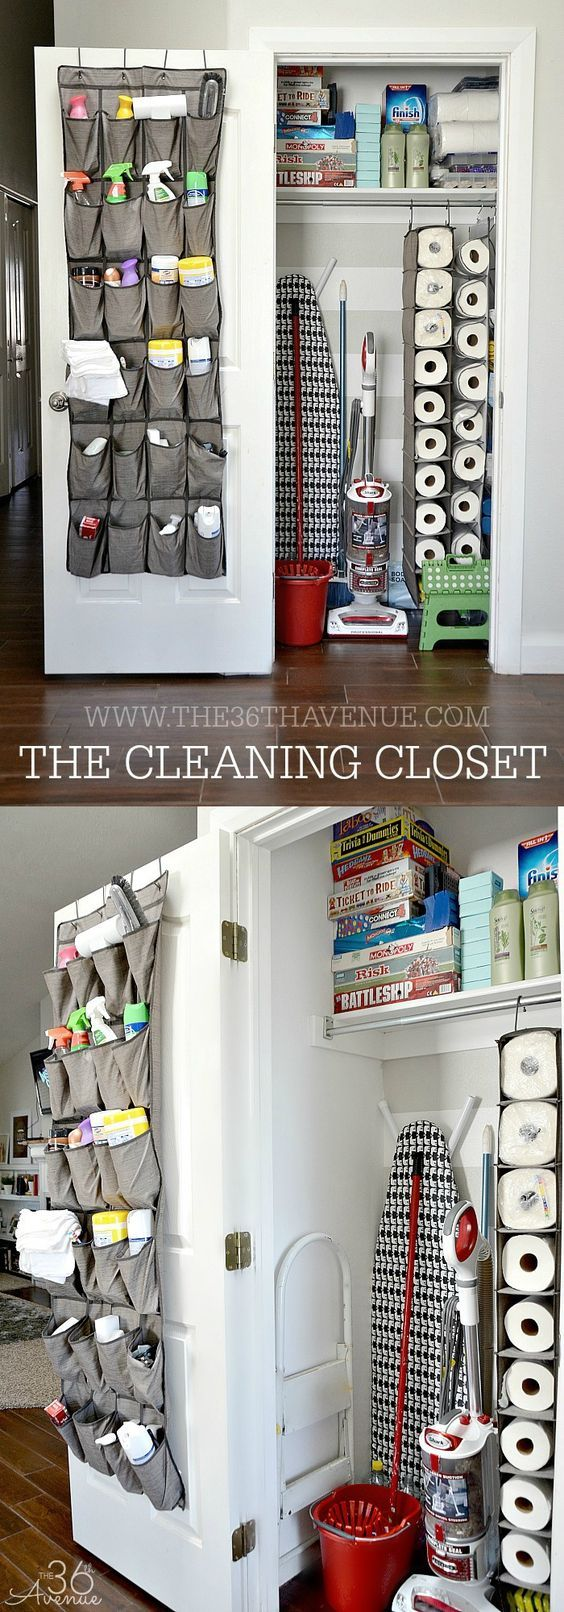 Small closet doors the small utility closet - Cleaning Tips Diy Cleaning Closet